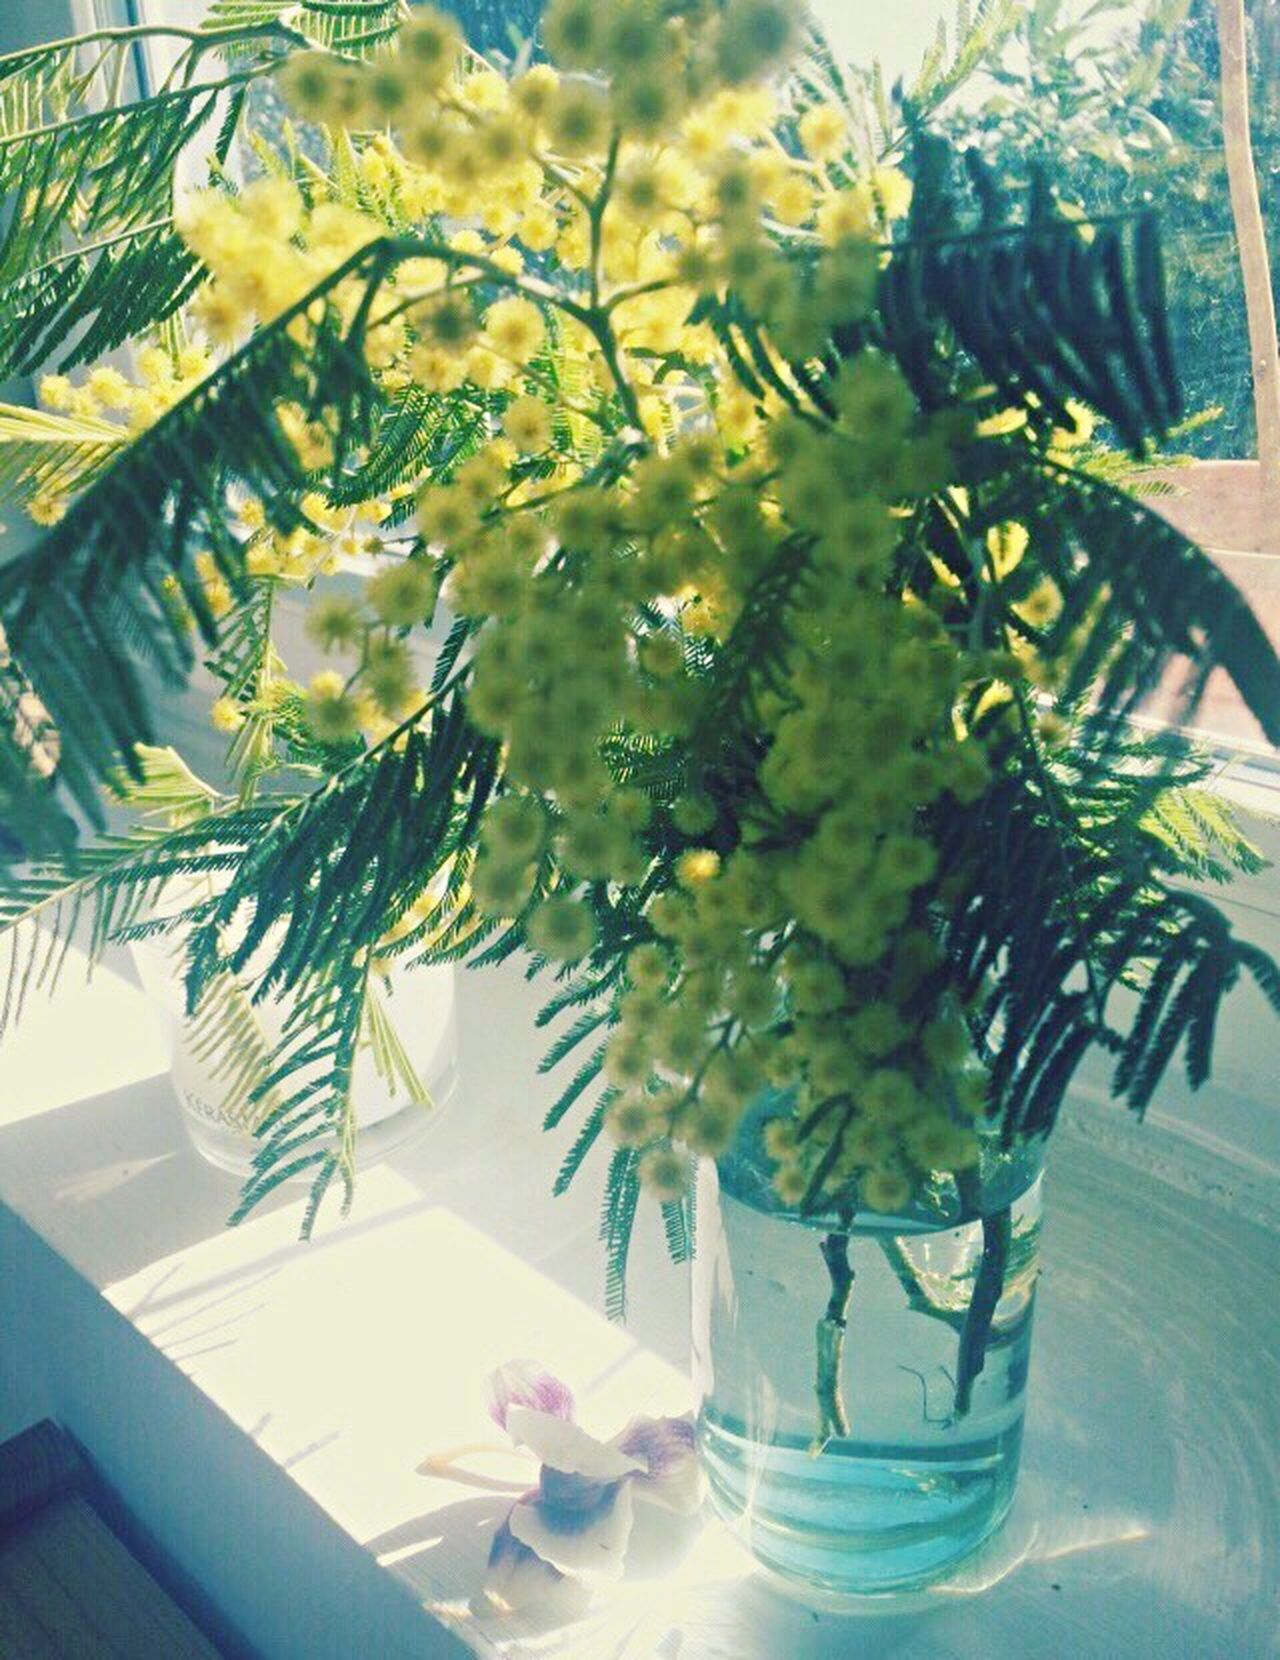 Mimosa EyeEm Best Shots Getting Inspired Rome Italy Italia Primavera Vase Table Indoors  Flower Nature No People Day Close-up Tree Beauty In Nature Bouquet Spring